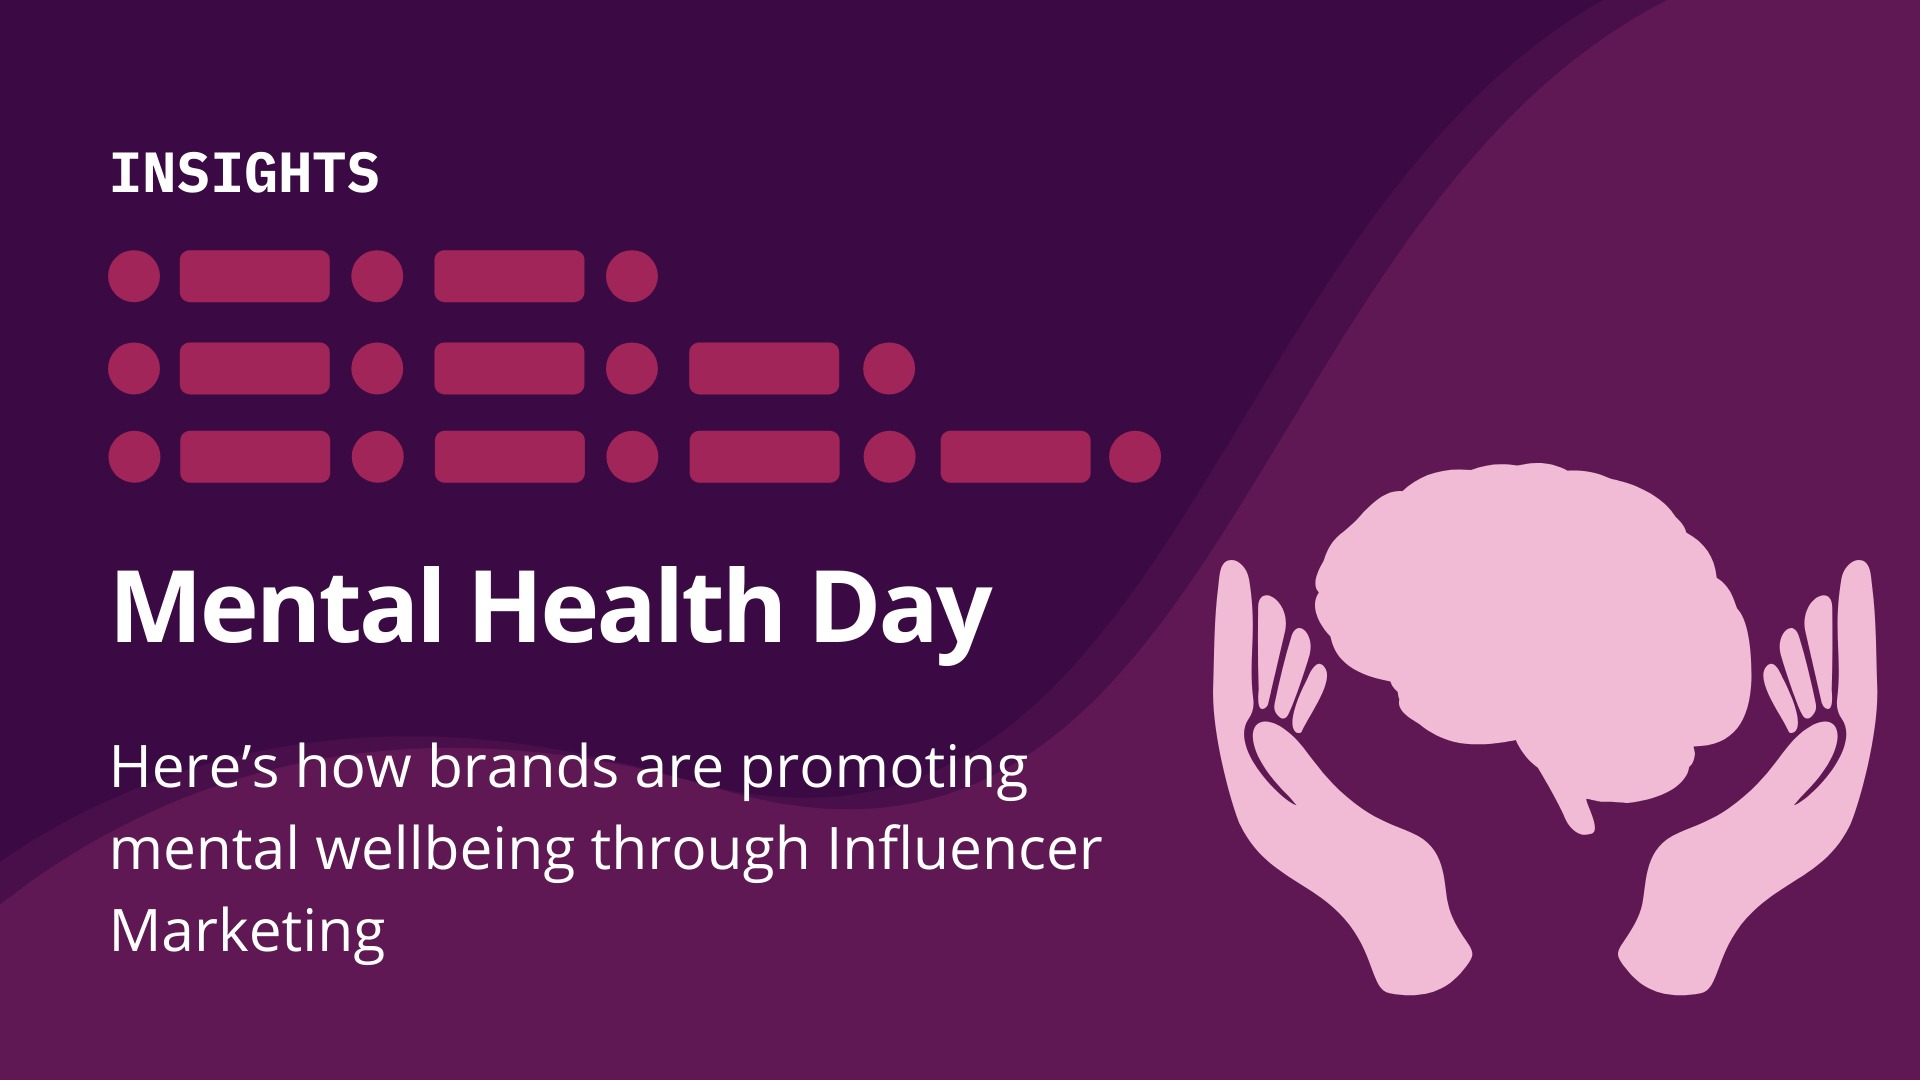 Mental Health Day 2021: Here's How Brands are Promoting Mental Wellbeing Through Influencer Marketing - blog by Winkl (An influencer marketing platform)